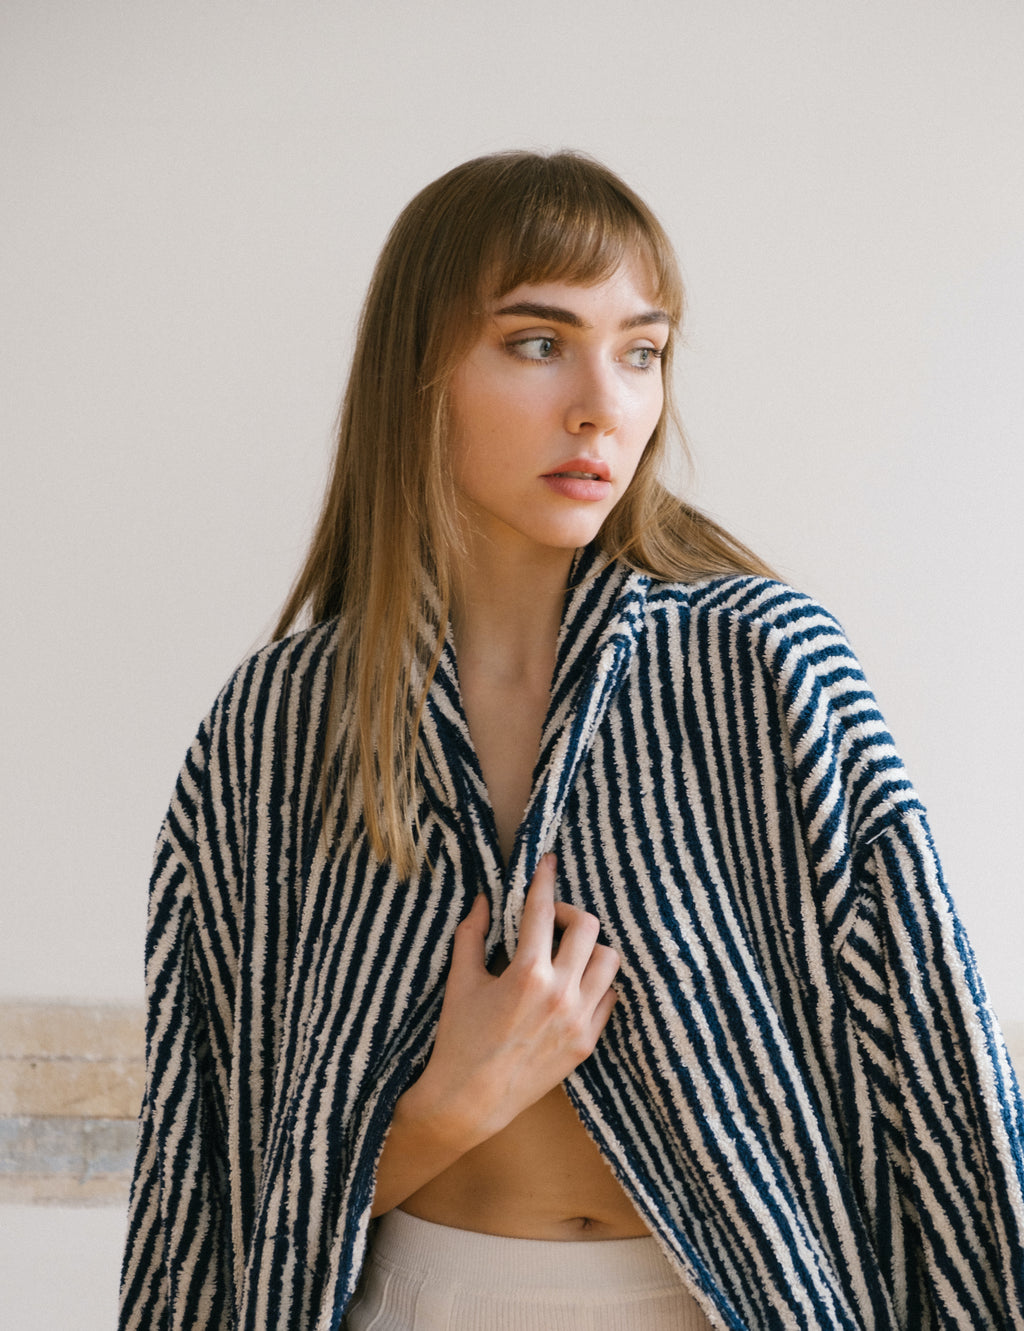 woman carrying white and navy striped cotton bathrobe over her shoulders